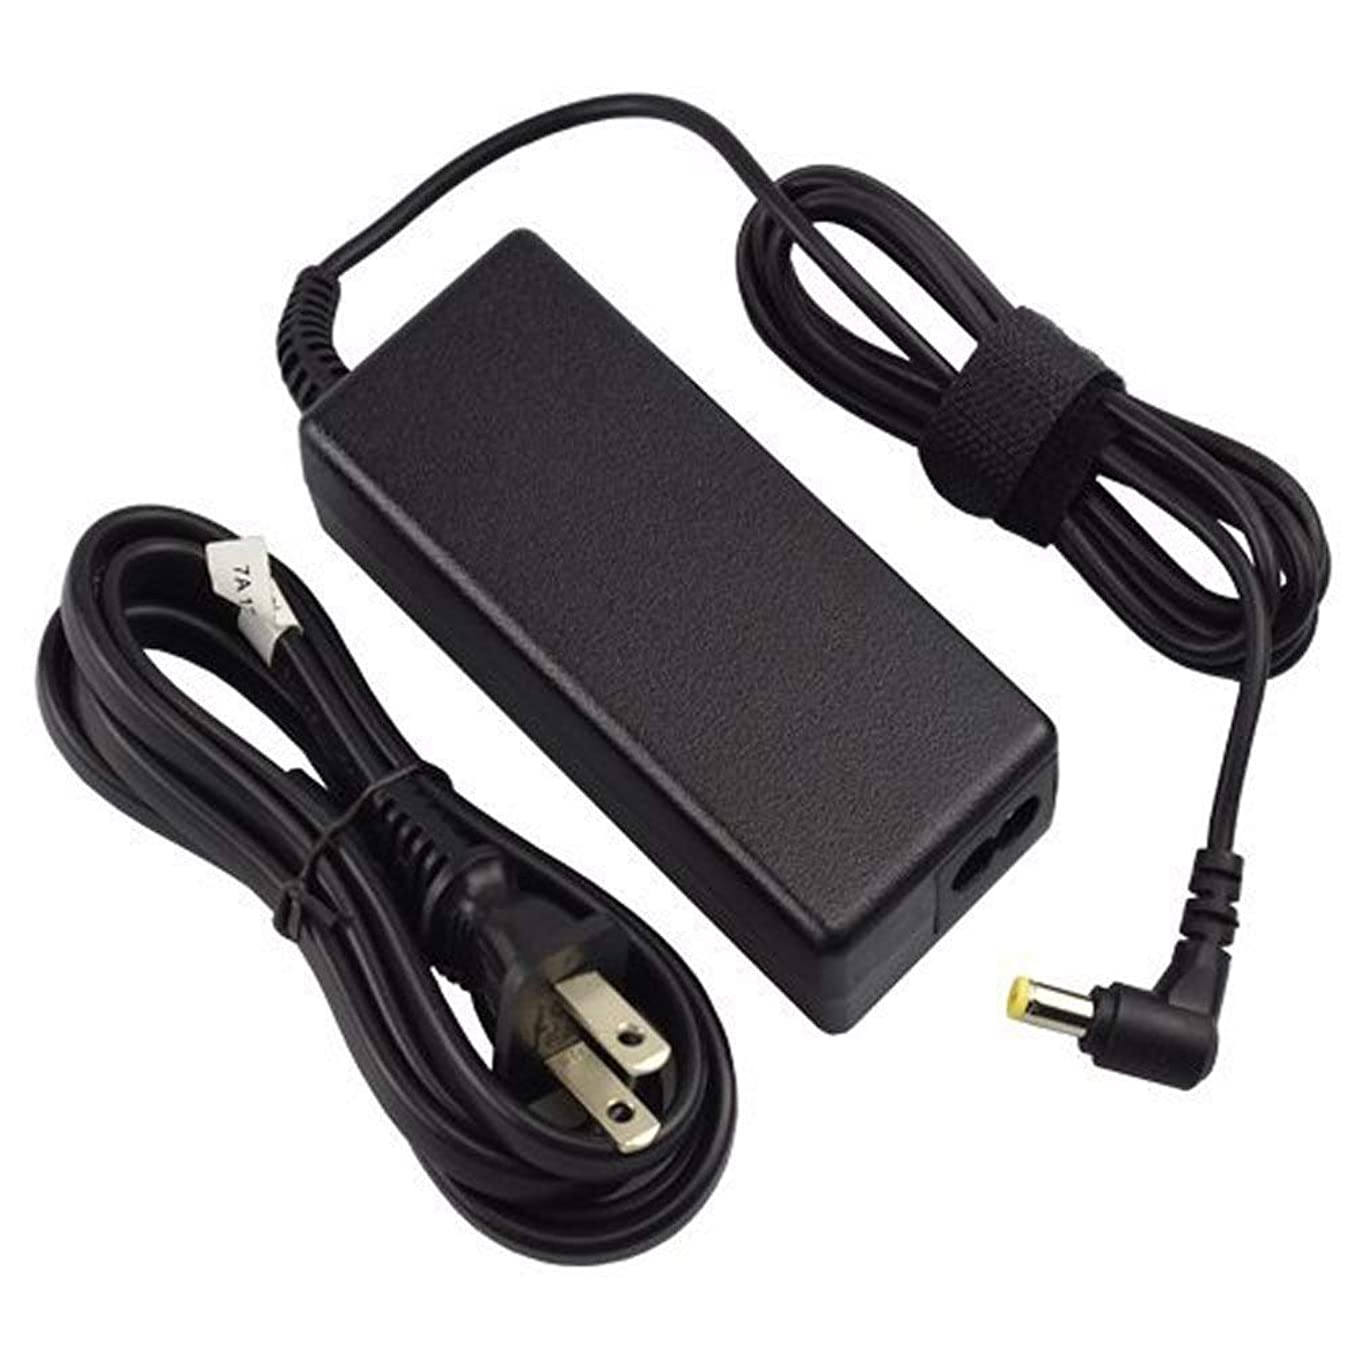 [UL Listed] 65W AC Charger Compatible with Acer Aspire E1 E1-510 E1-510P E1-521 E1-522 E1-530 E1-531 E1-532 E1-532P E1-570 E1-570G E1-571 E1-572 E1-572G E1-572P Laptop Power Supply Adapter Cord